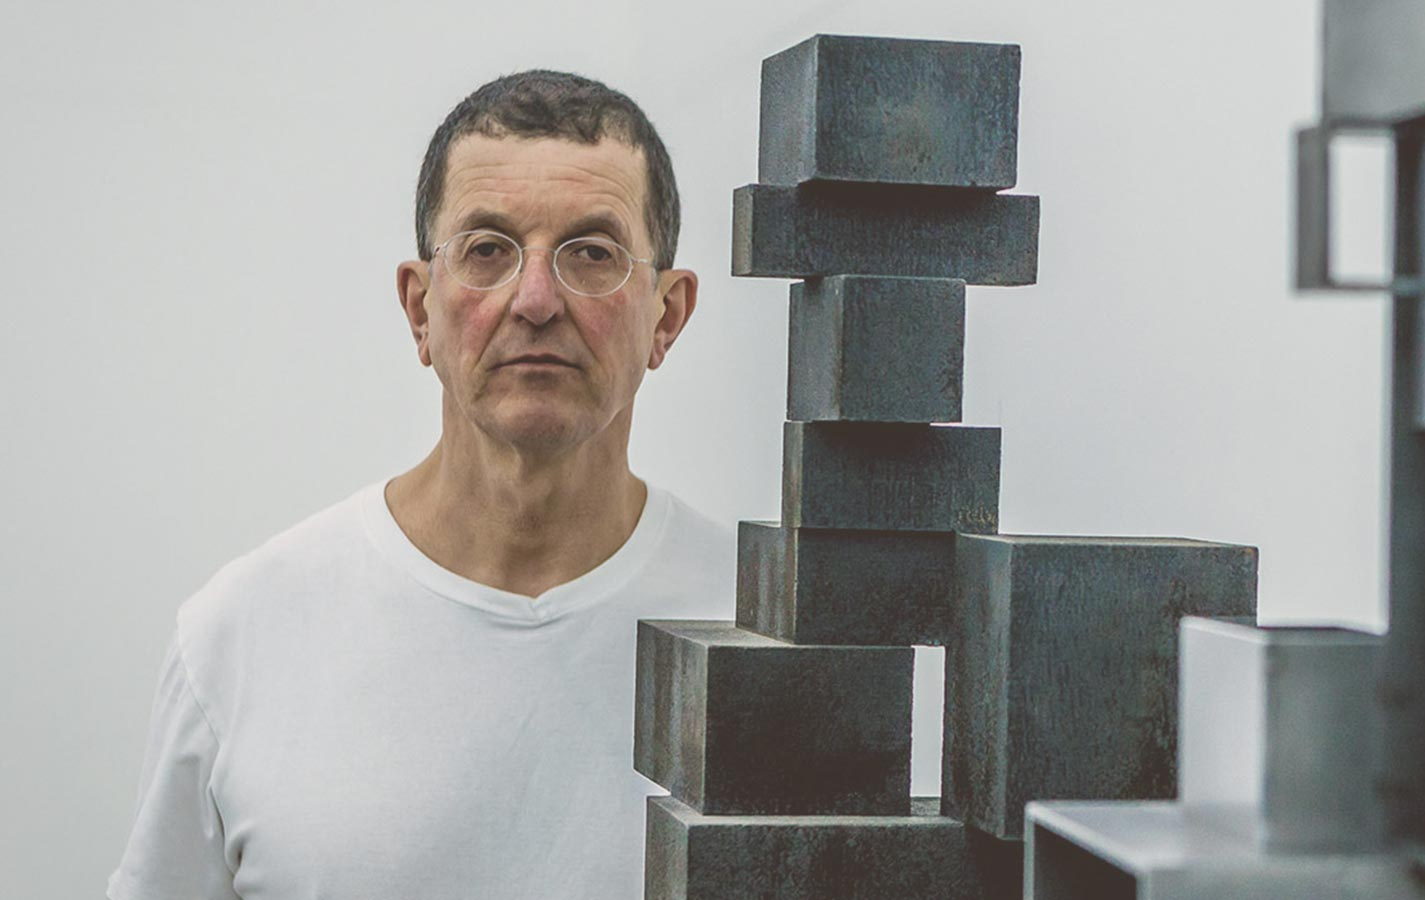 El arte actual de Antony Gormley